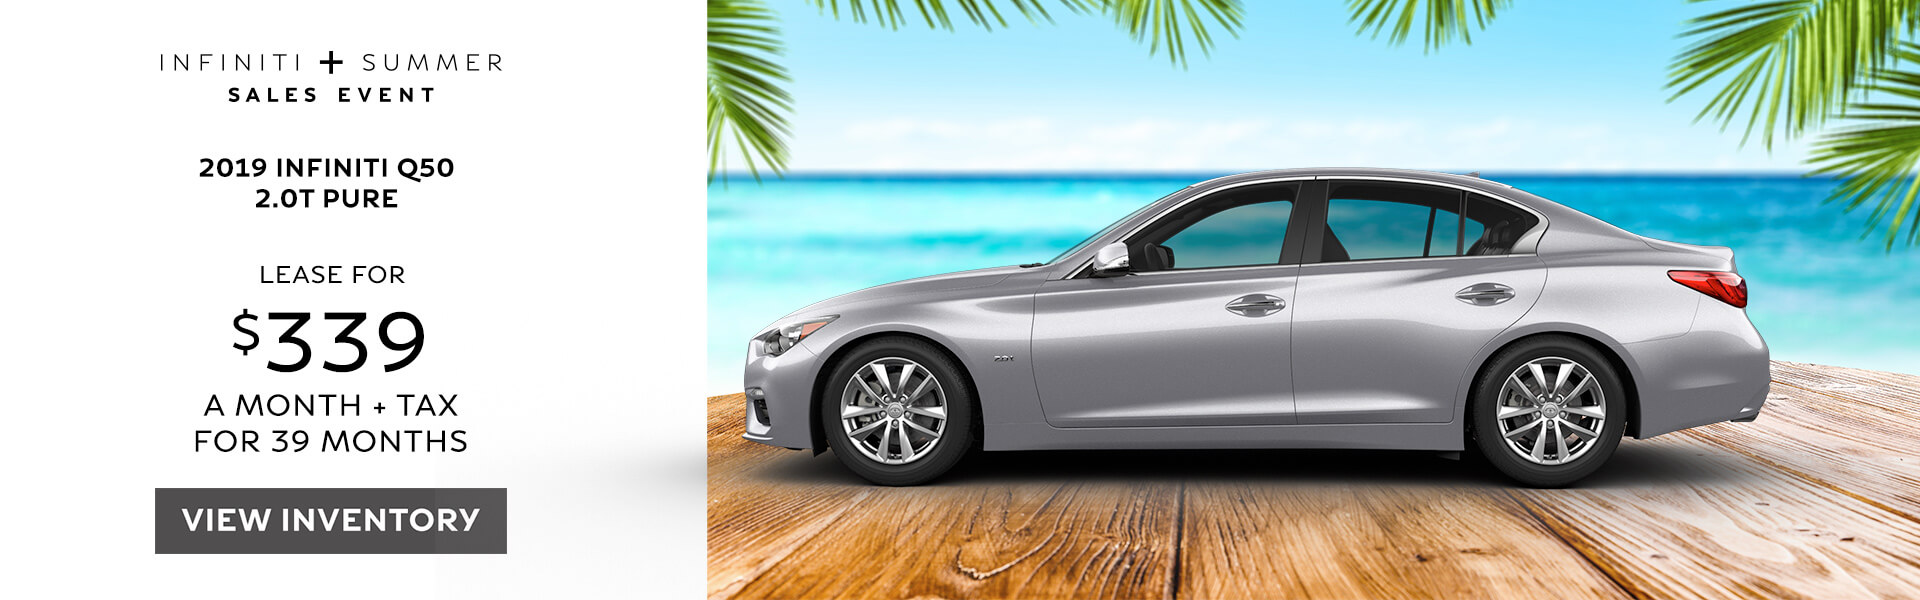 Infiniti Dealership Columbus Ohio >> Infiniti Of Columbus Serving Dublin Central Ohio Customers